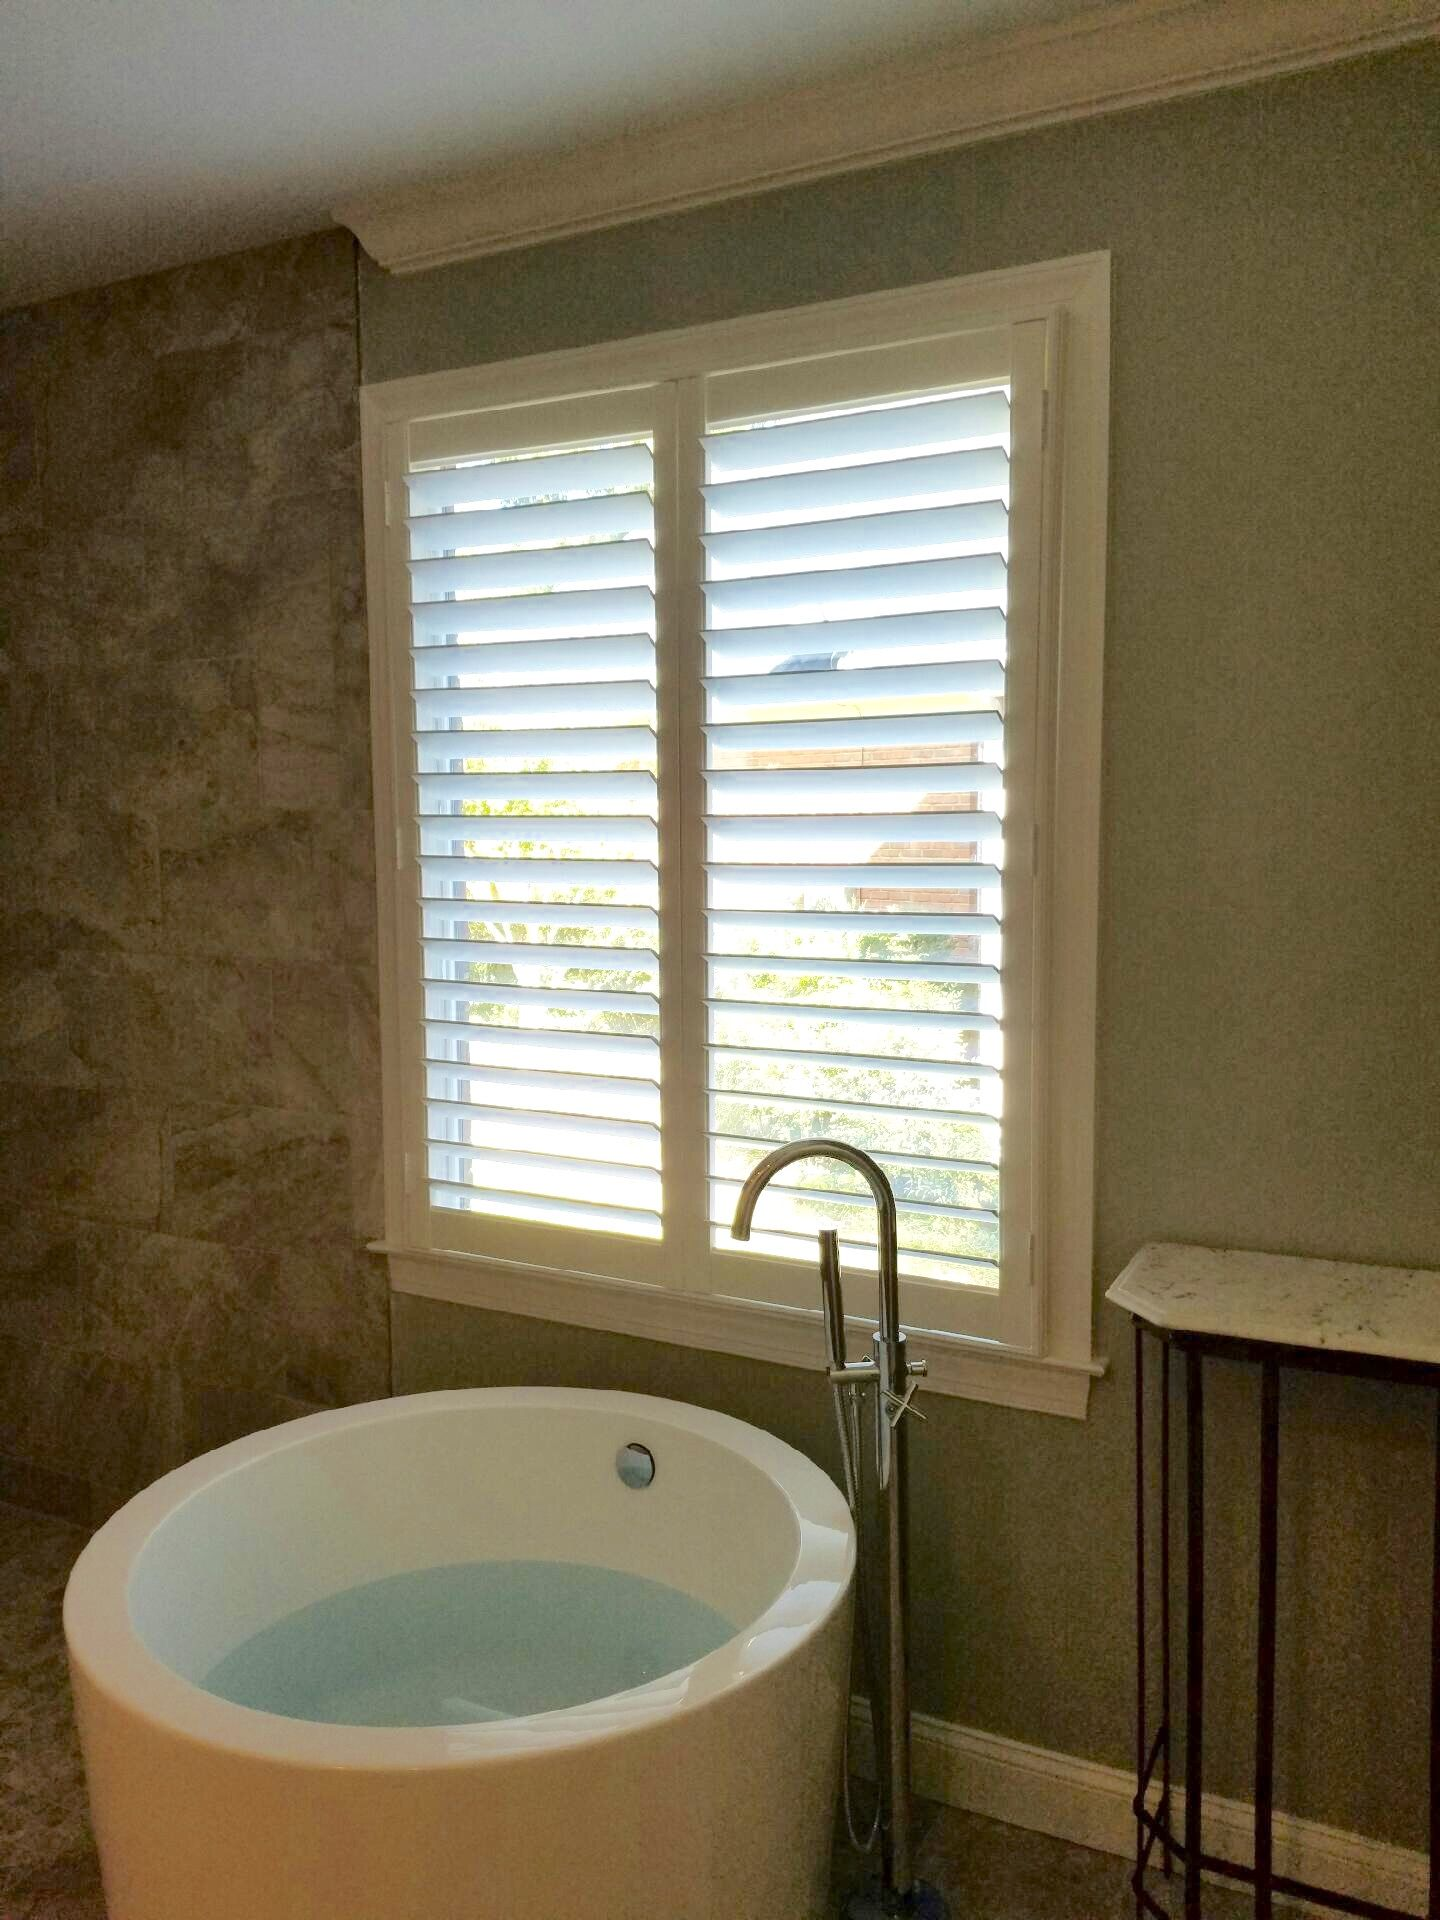 Bathroom Window Louvers graber real wood shutters with hidden tilt and 3.5 inch louvers